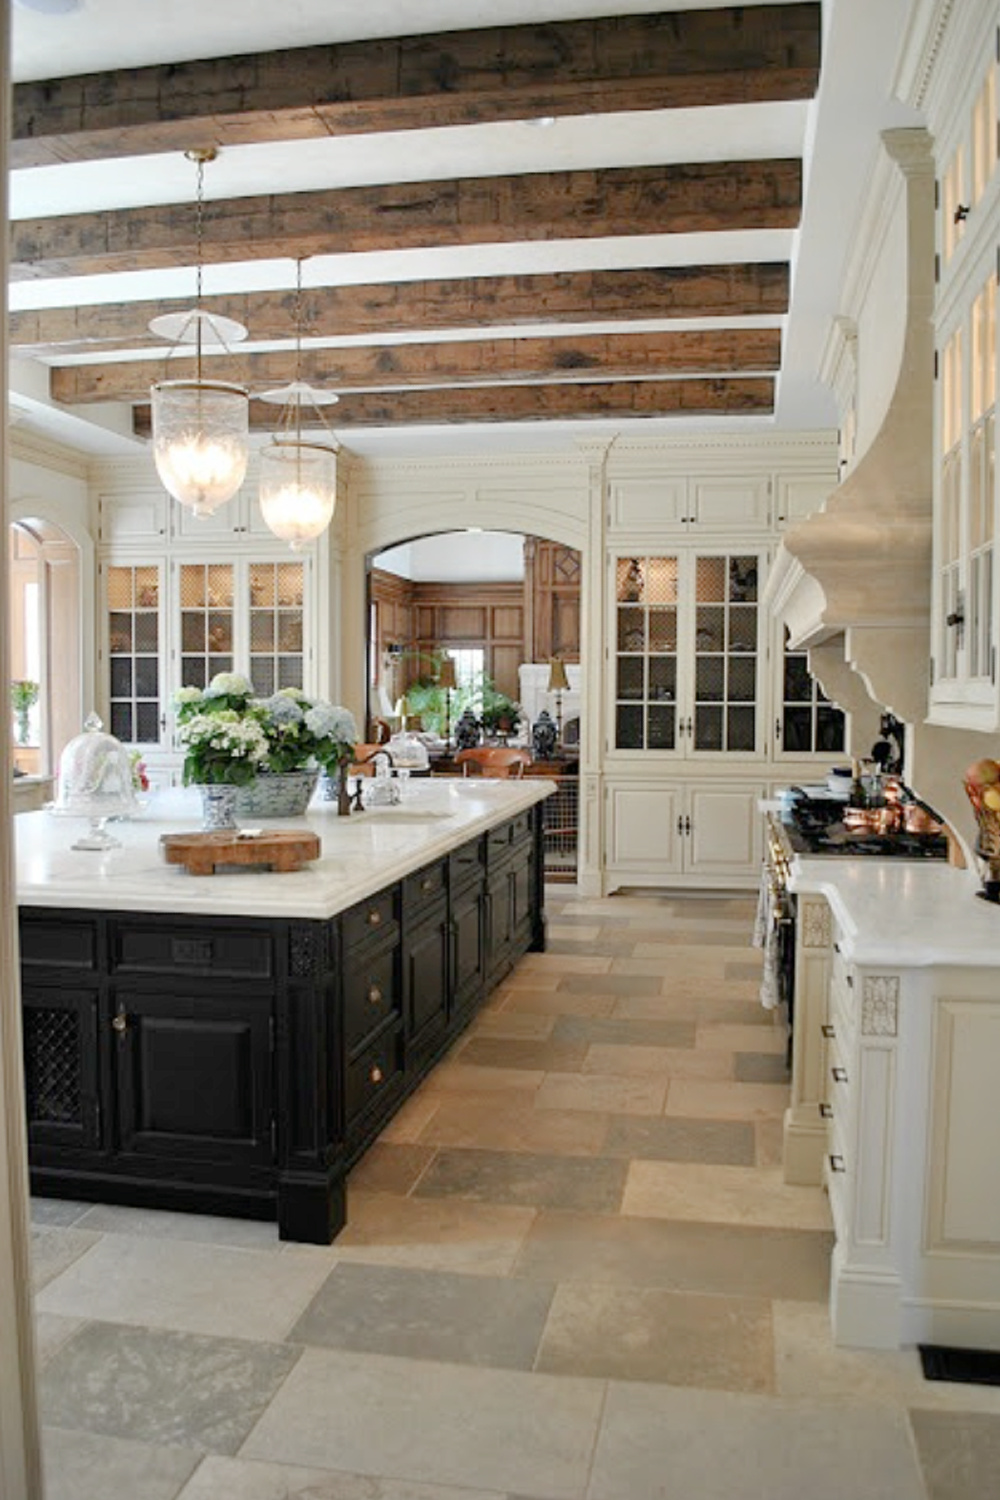 Stunning French Country kitchen with black island, wood celing beams, bell jar pendant lights, and marble counters. #FrenchCountry #kitchendesign